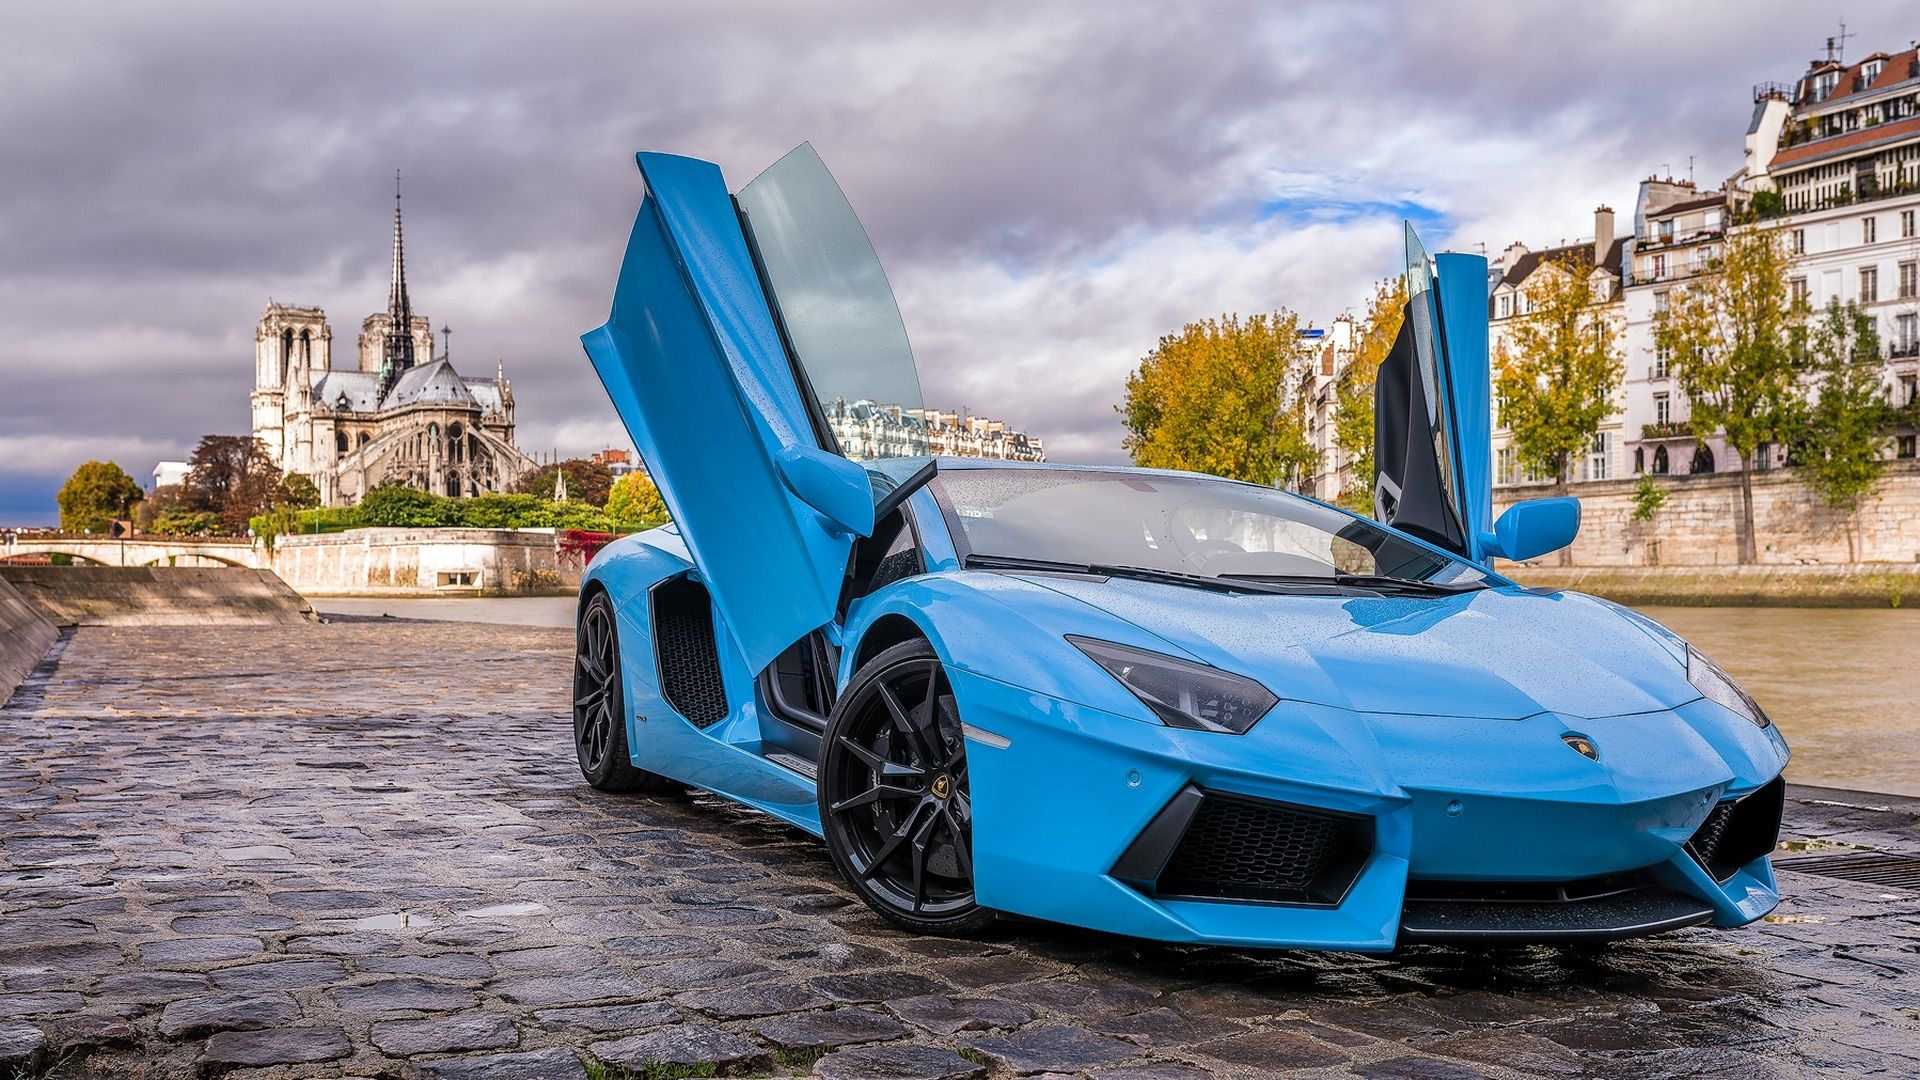 Blue Lamborghini Wallpaper Phone Free Download Lamborghini